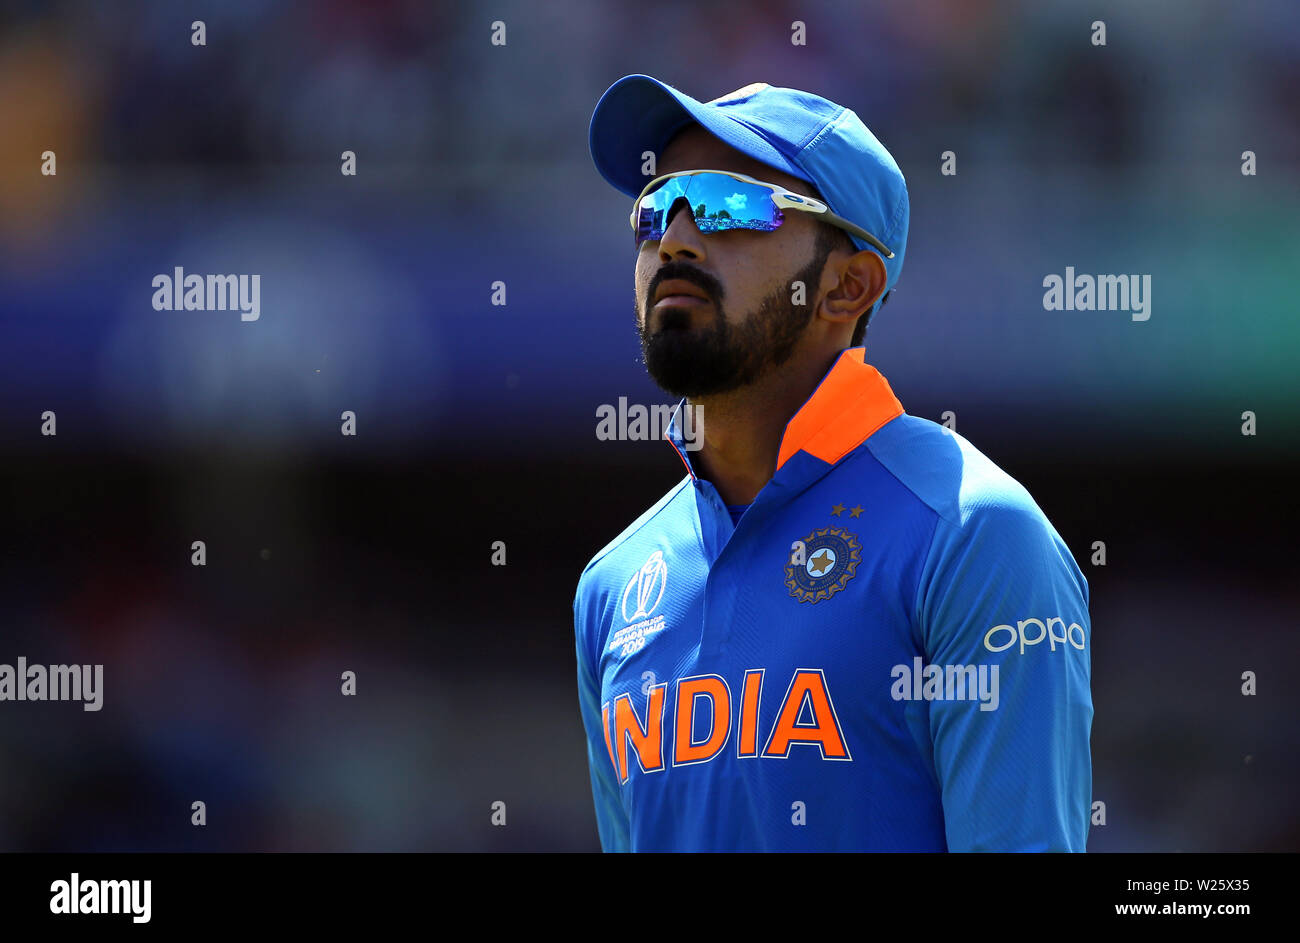 India's KL Rahul during the ICC Cricket World Cup group stage match at Headingley, Leeds. - Stock Image